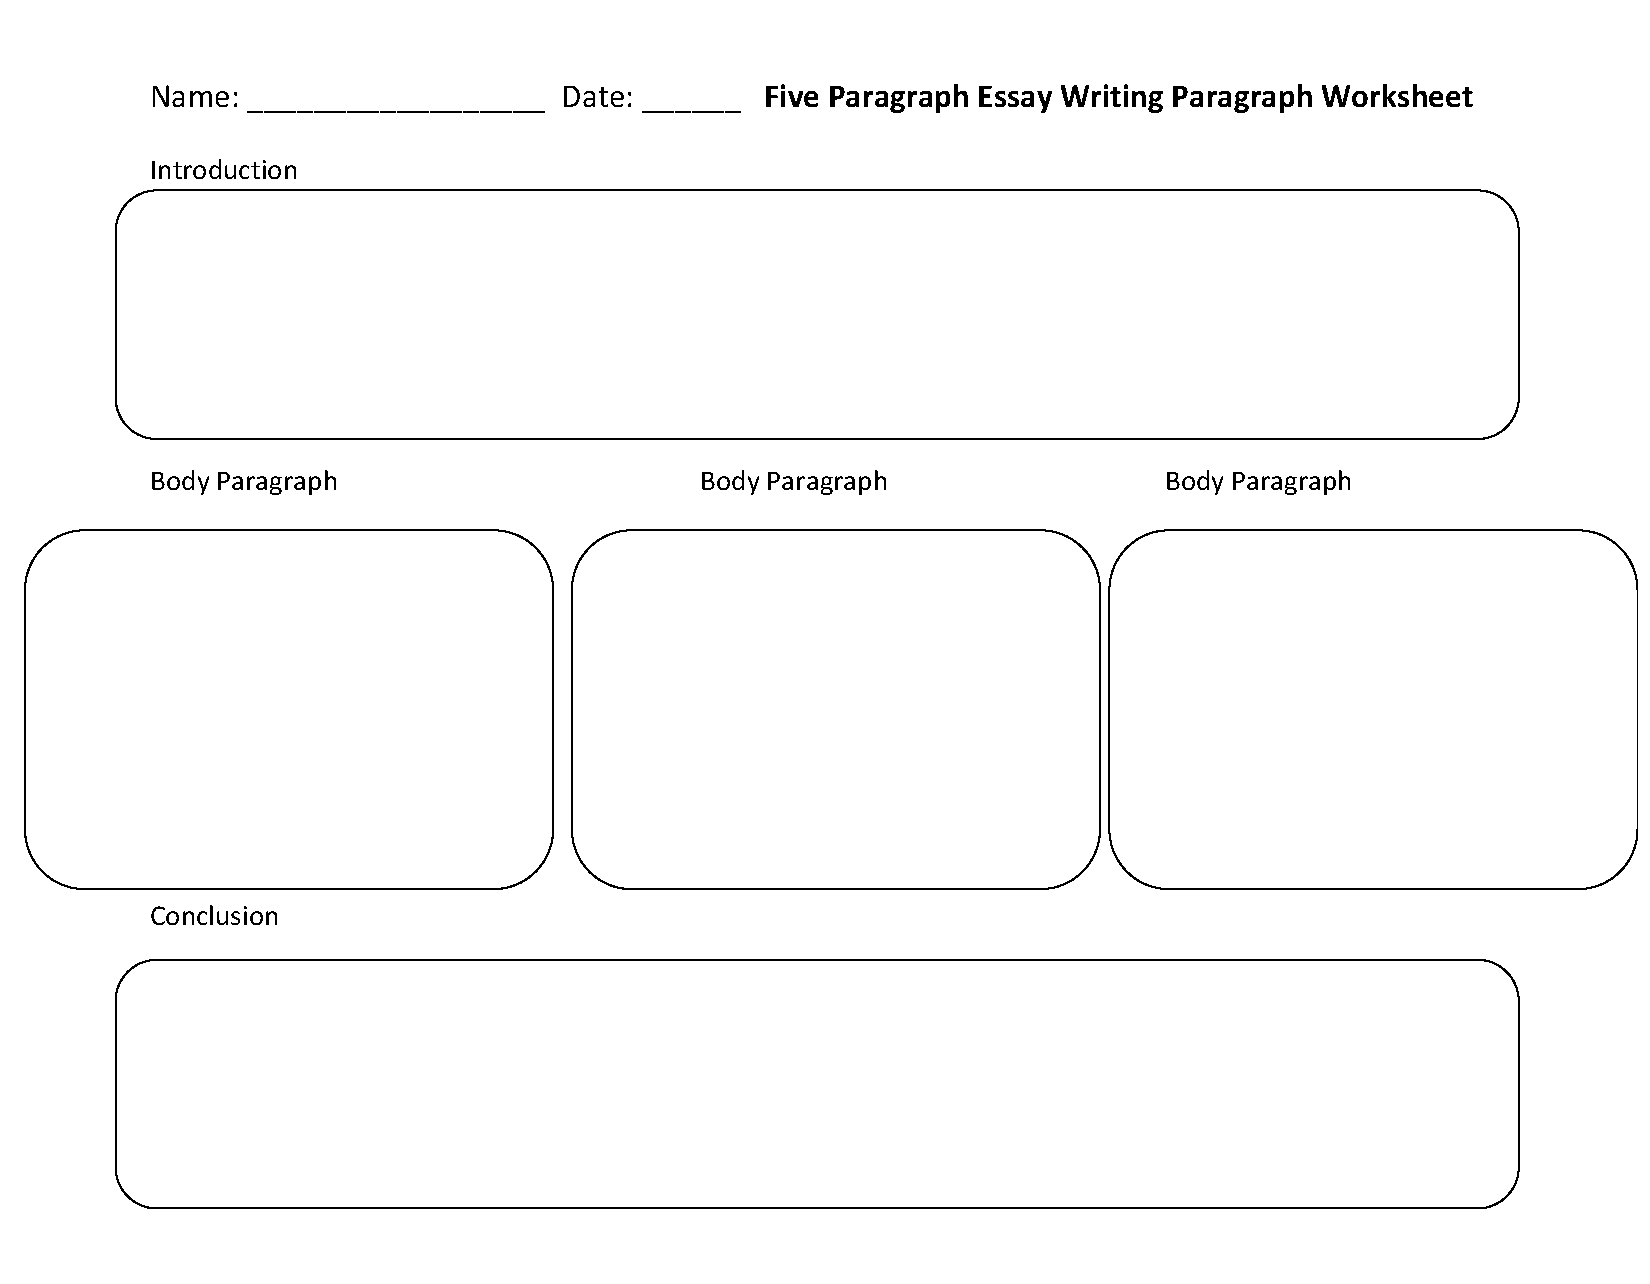 Paragraph Writing Worksheets | Five Paragraph Essay Writing